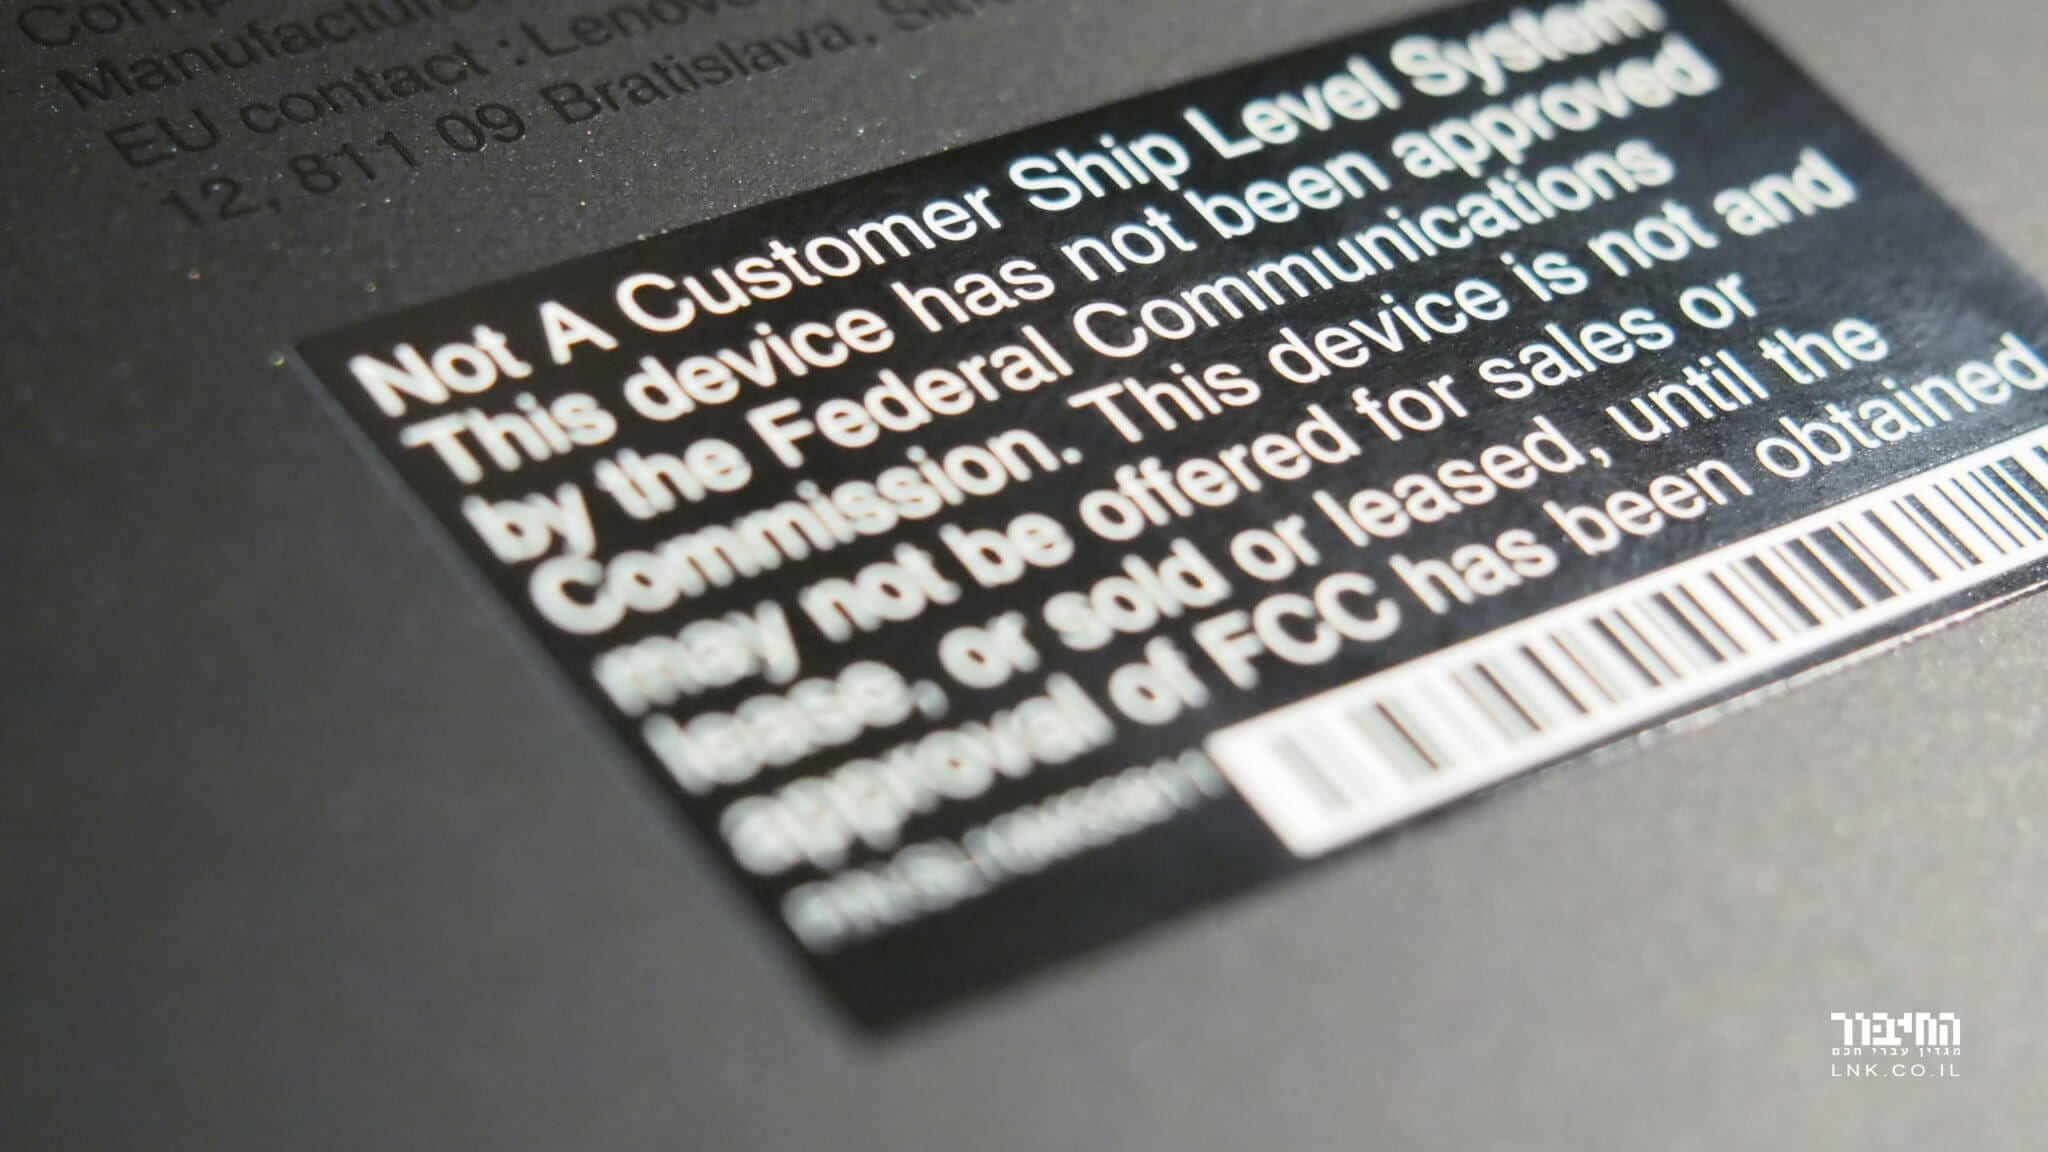 FCC warning on back of a Thinkpad X13 Yoga Engineering sample